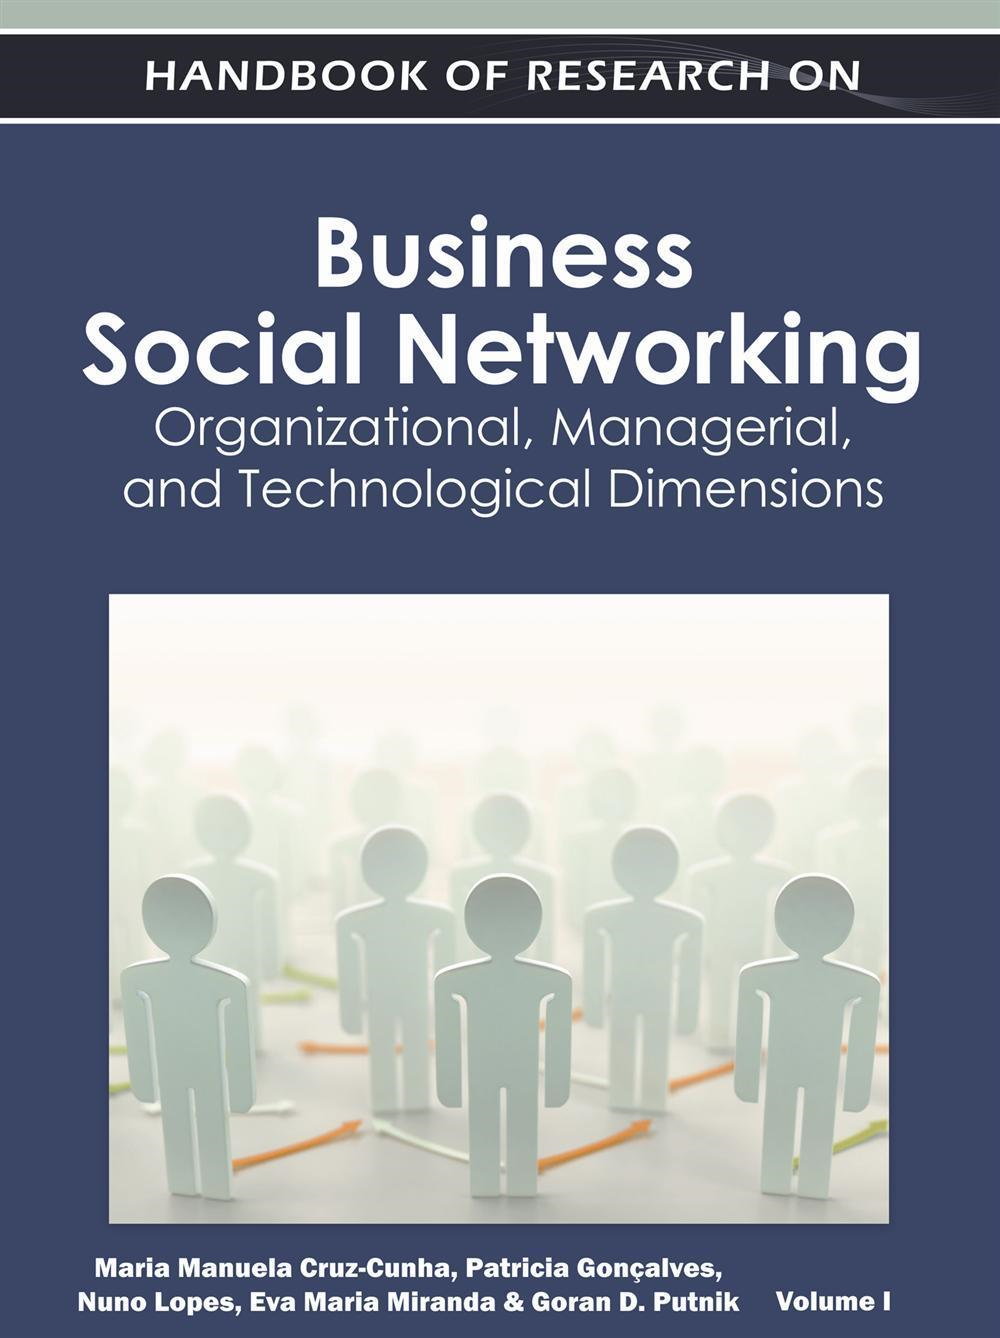 Handbook of Research on Business Social Networking: Organizational, Managerial, and Technological Dimensions